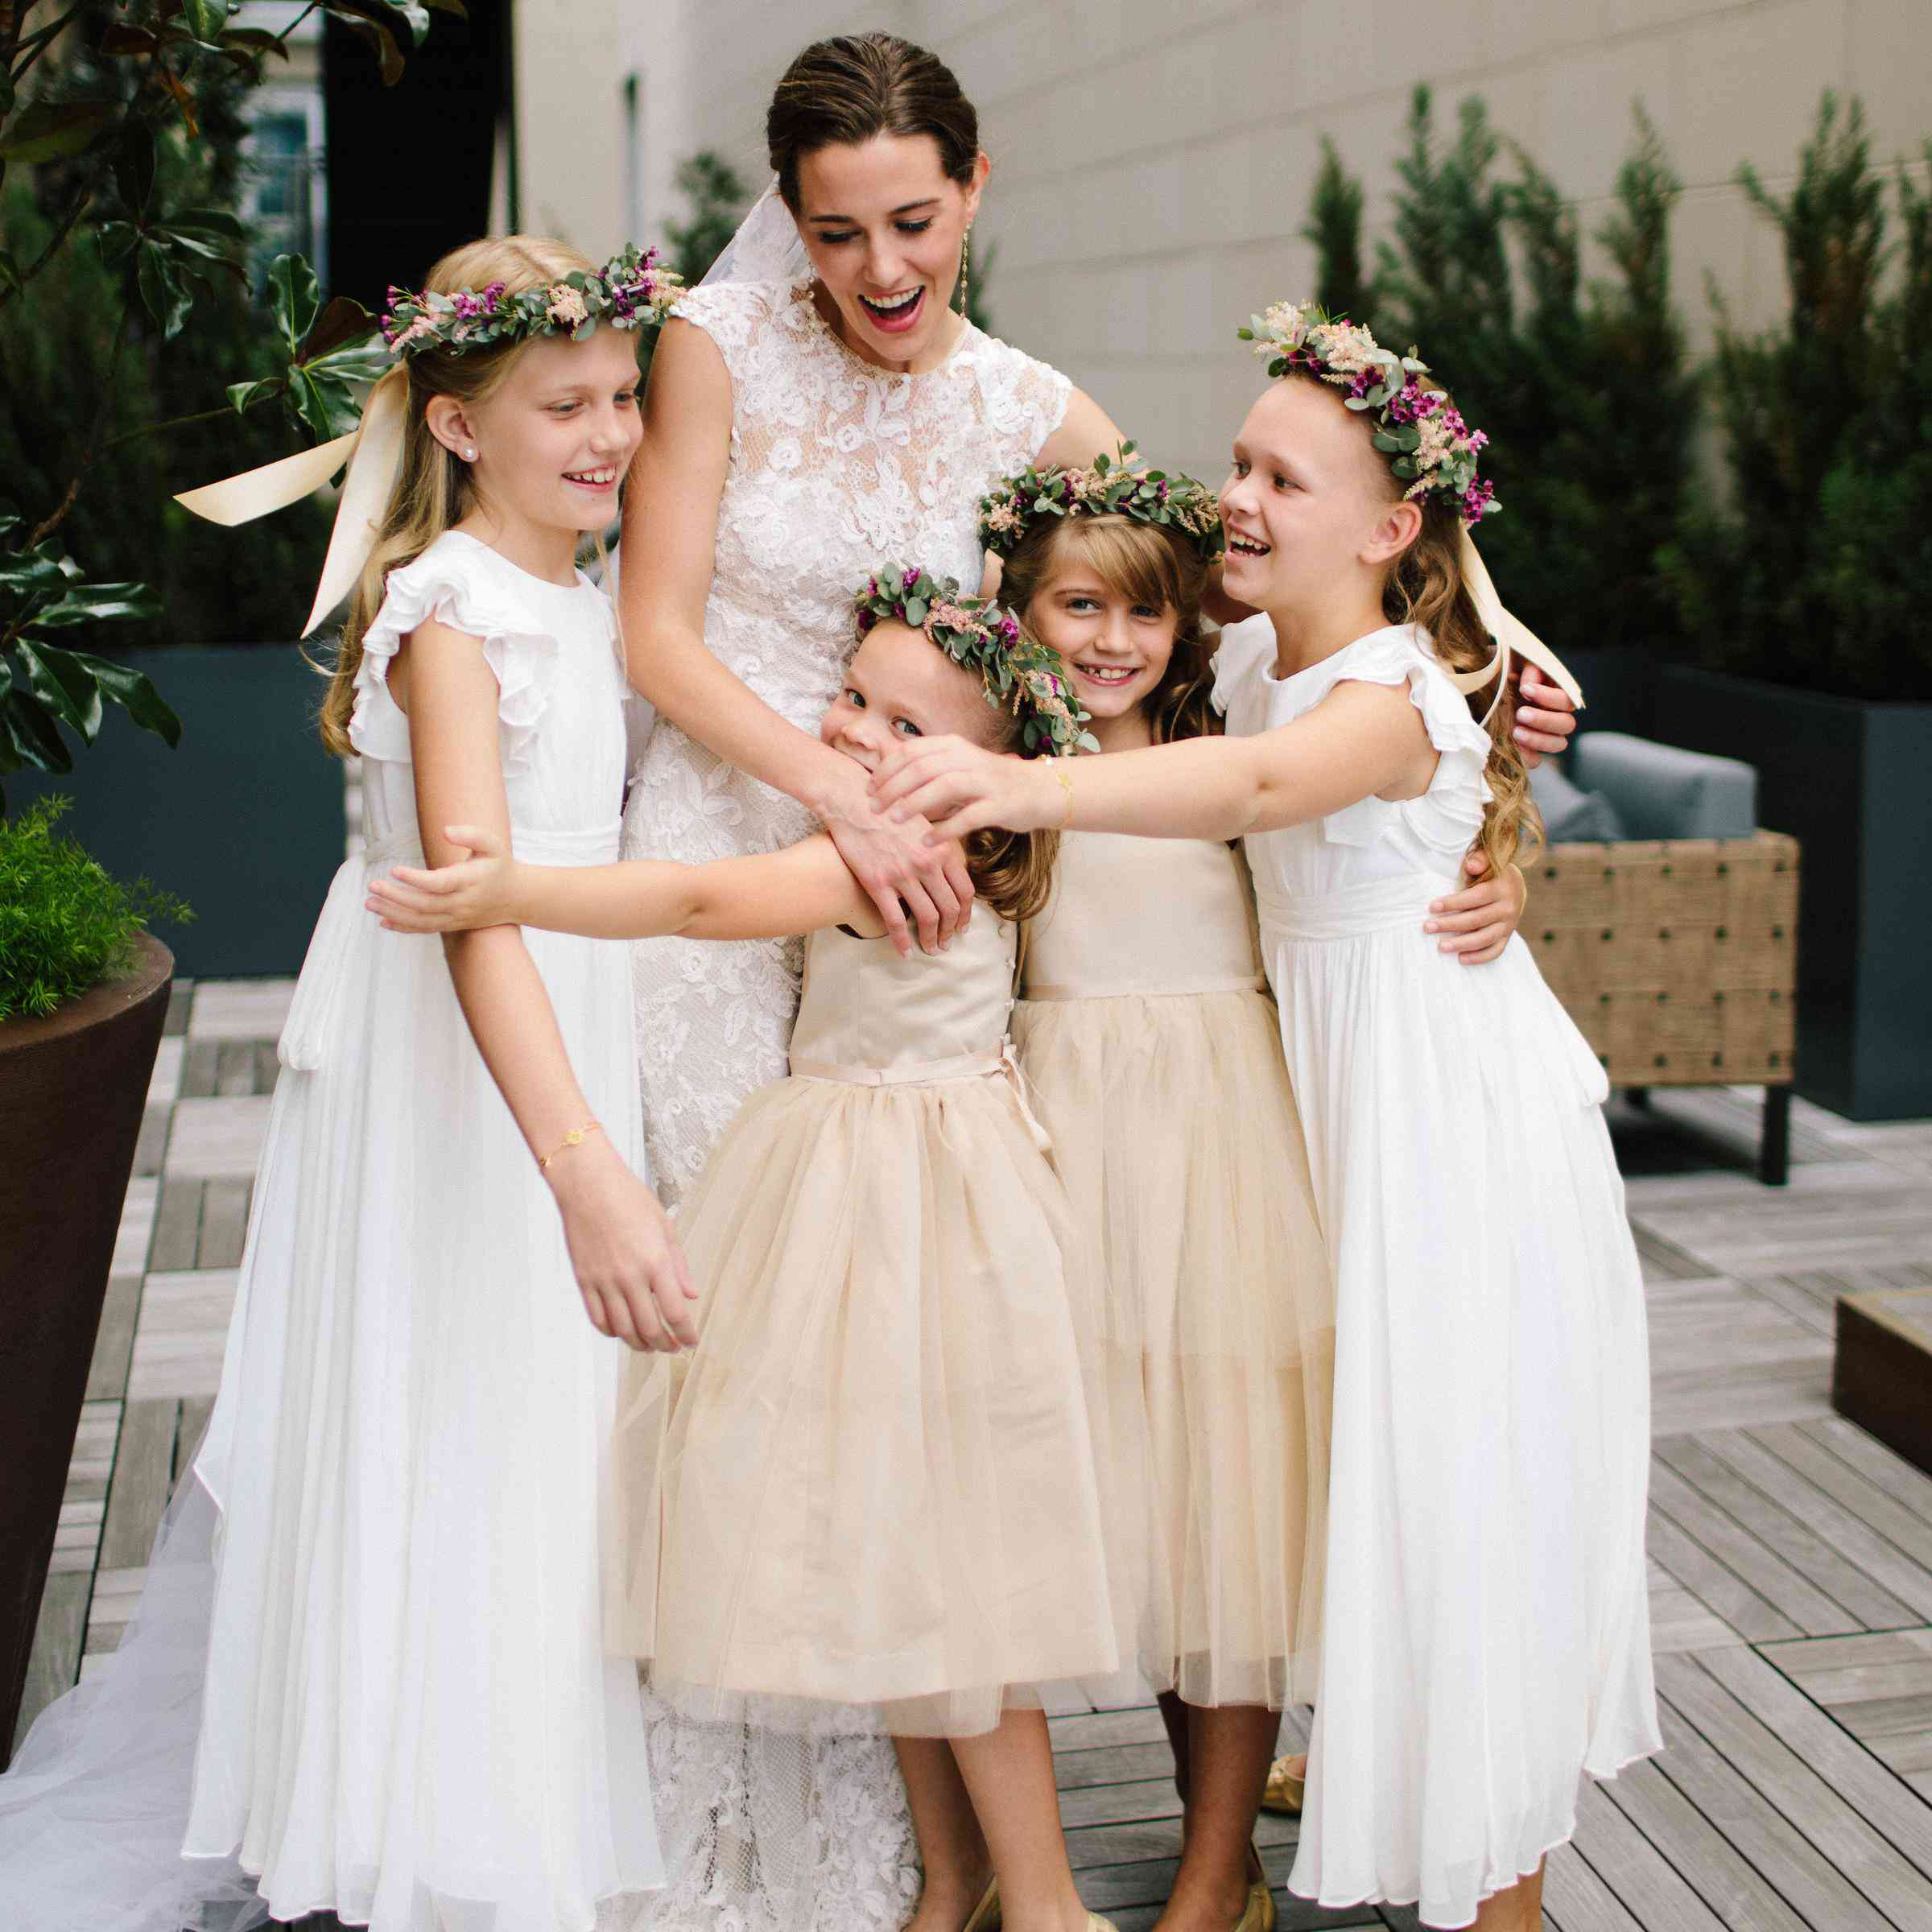 40712c6f06 35 Adorable Flower Girls From Real Weddings